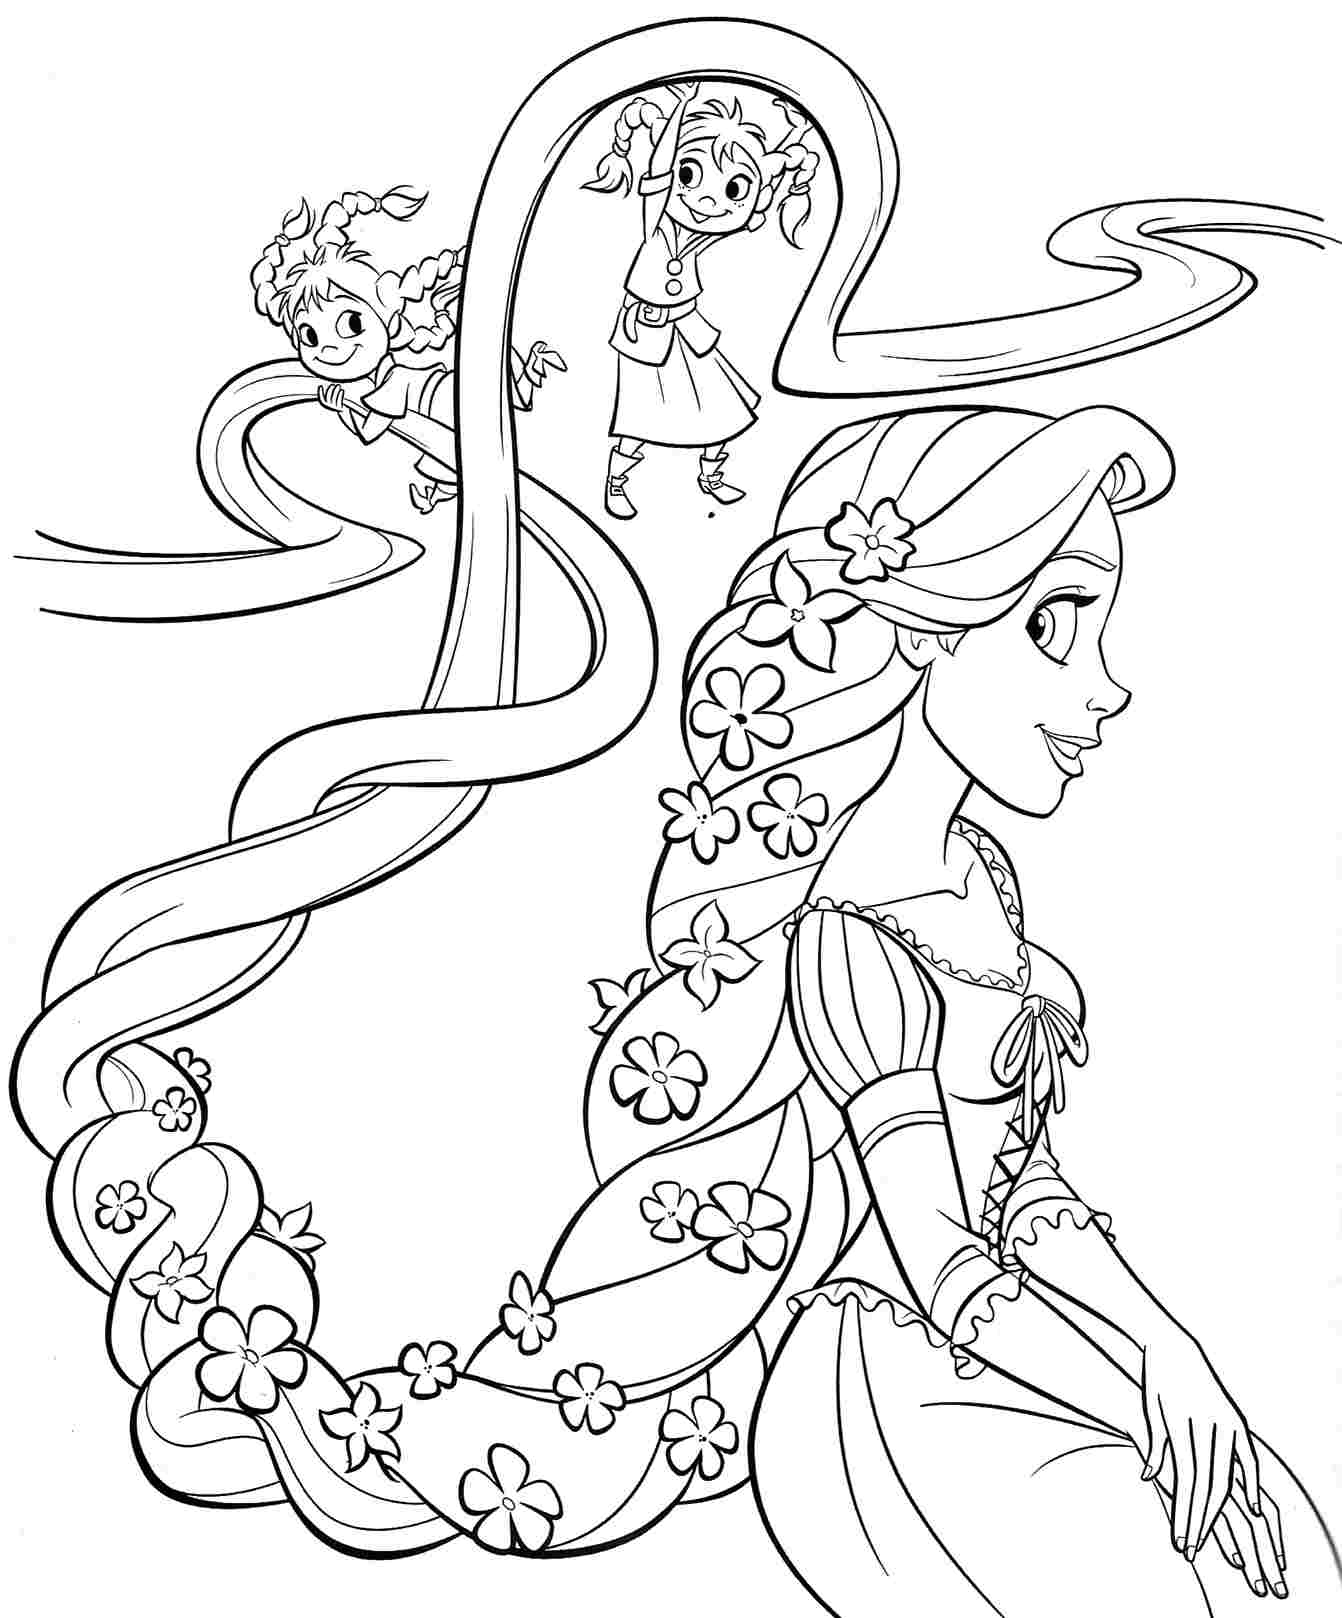 Disney princess christmas coloring pages free - Angel Princess Coloring Pages Tangled Princess Rapunzel